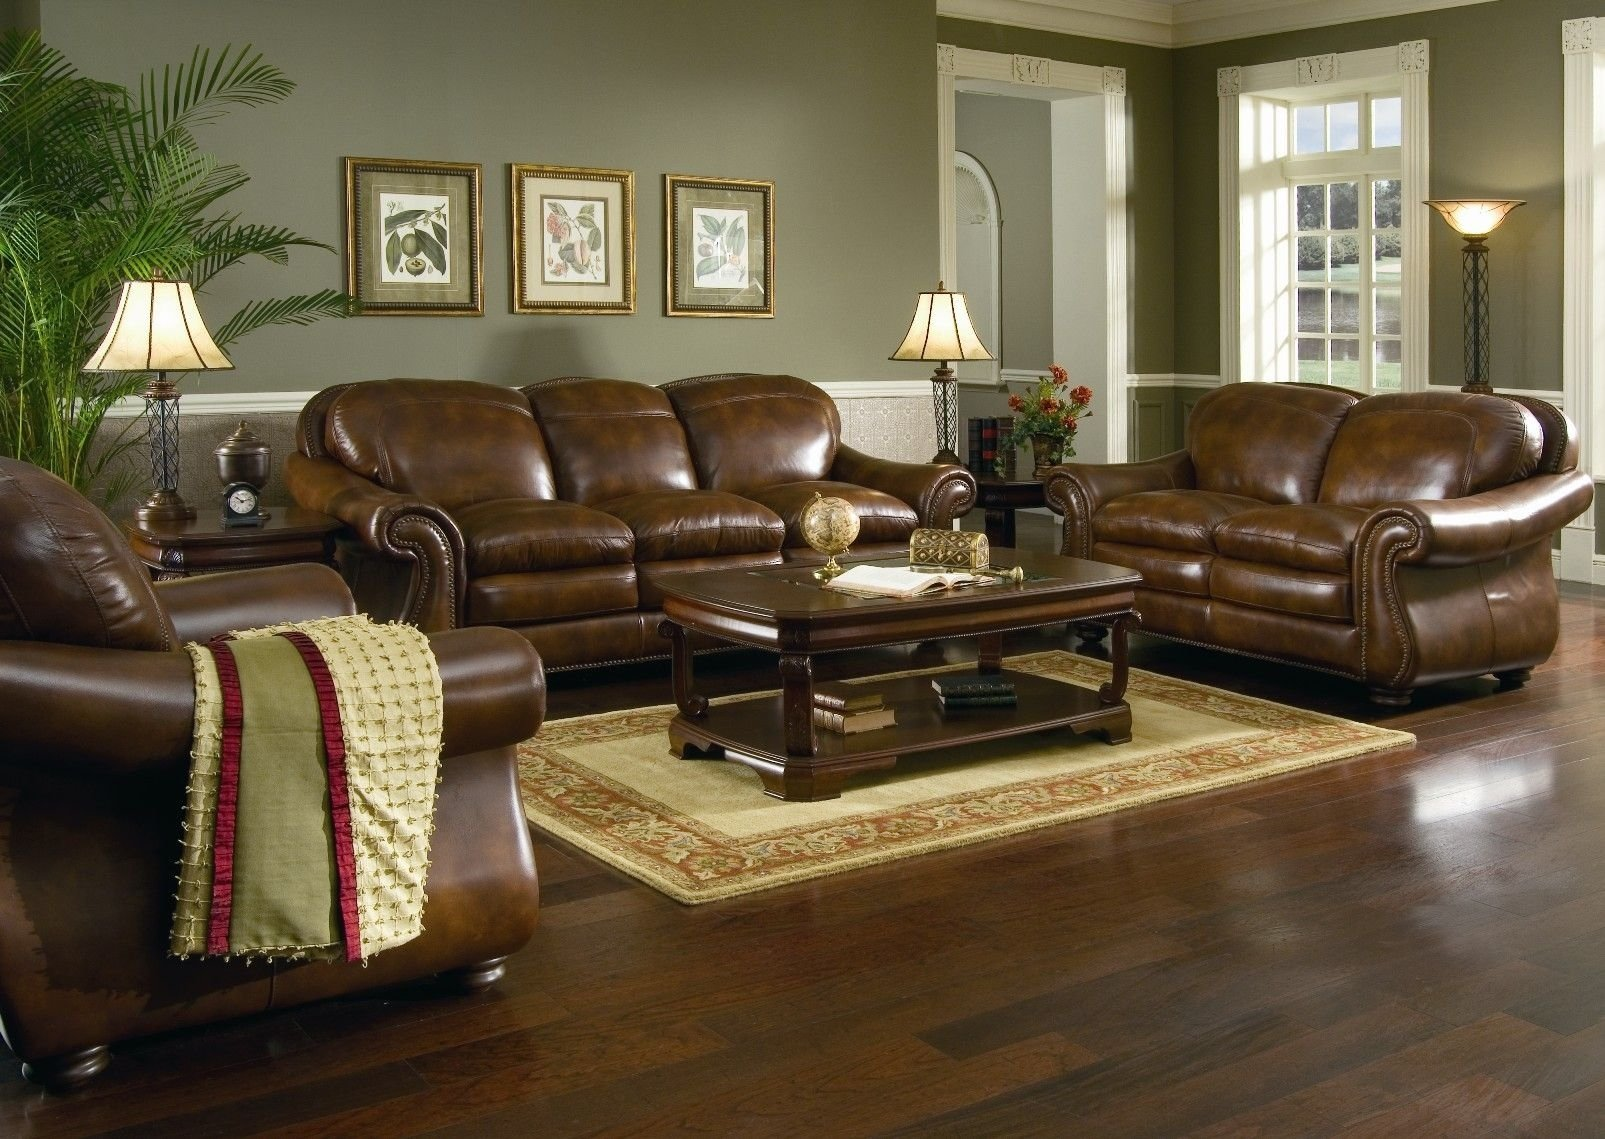 10 Awesome Leather Couch Living Room Ideas brown leather sofa set for living room with dark hardwood floors 2 2020